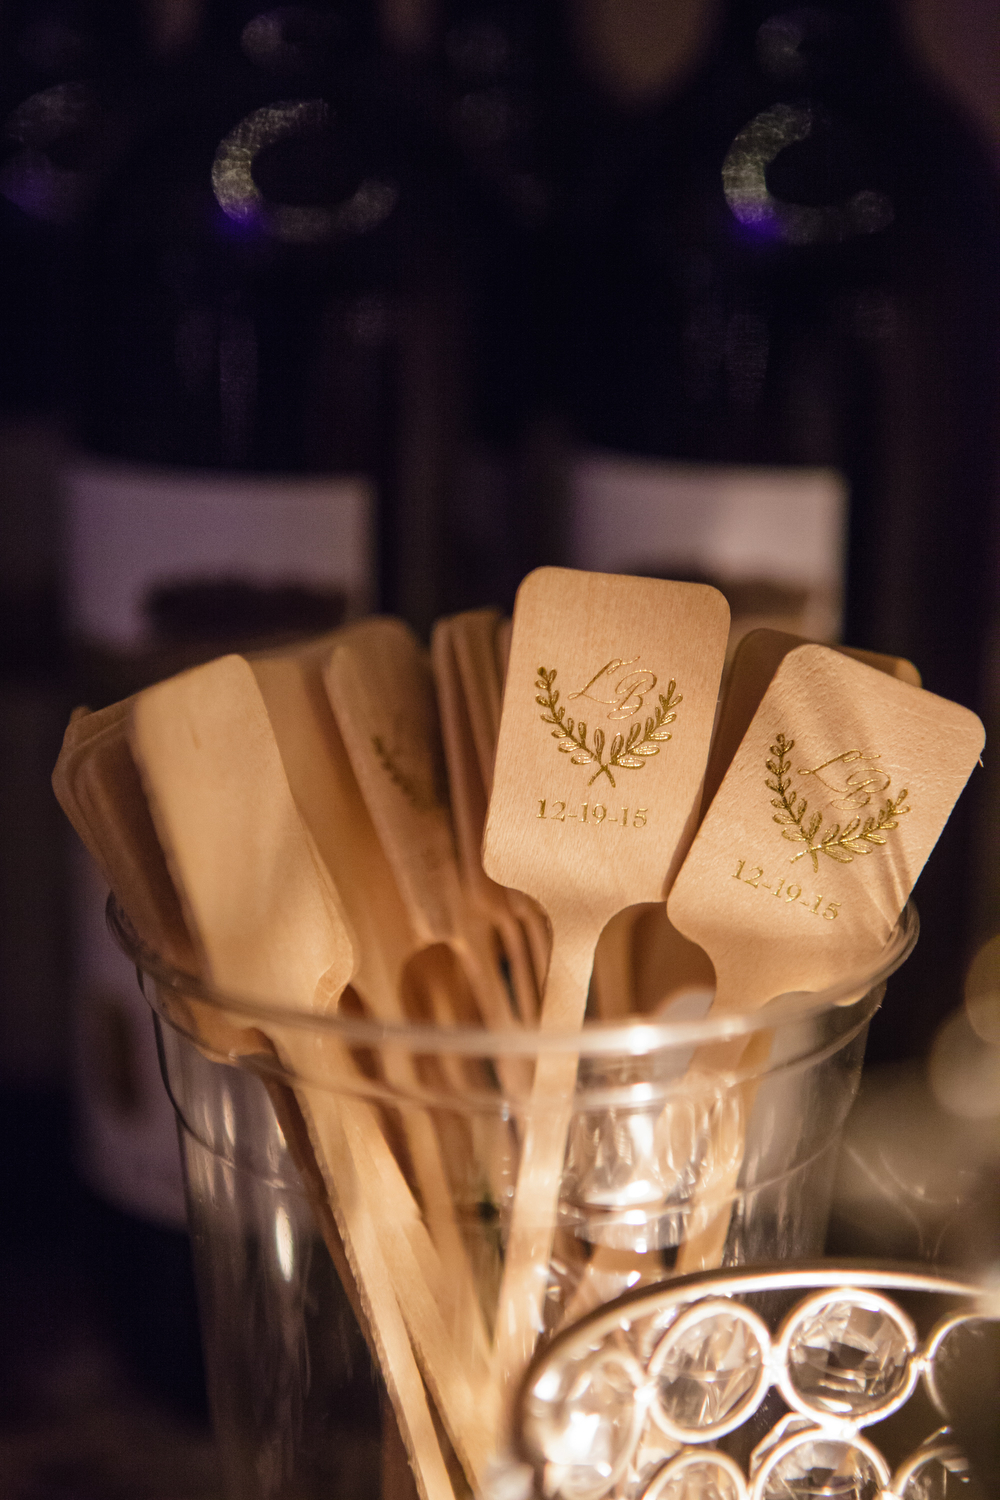 wooden engraved with gold stir sticks for cocktails at bar closeup